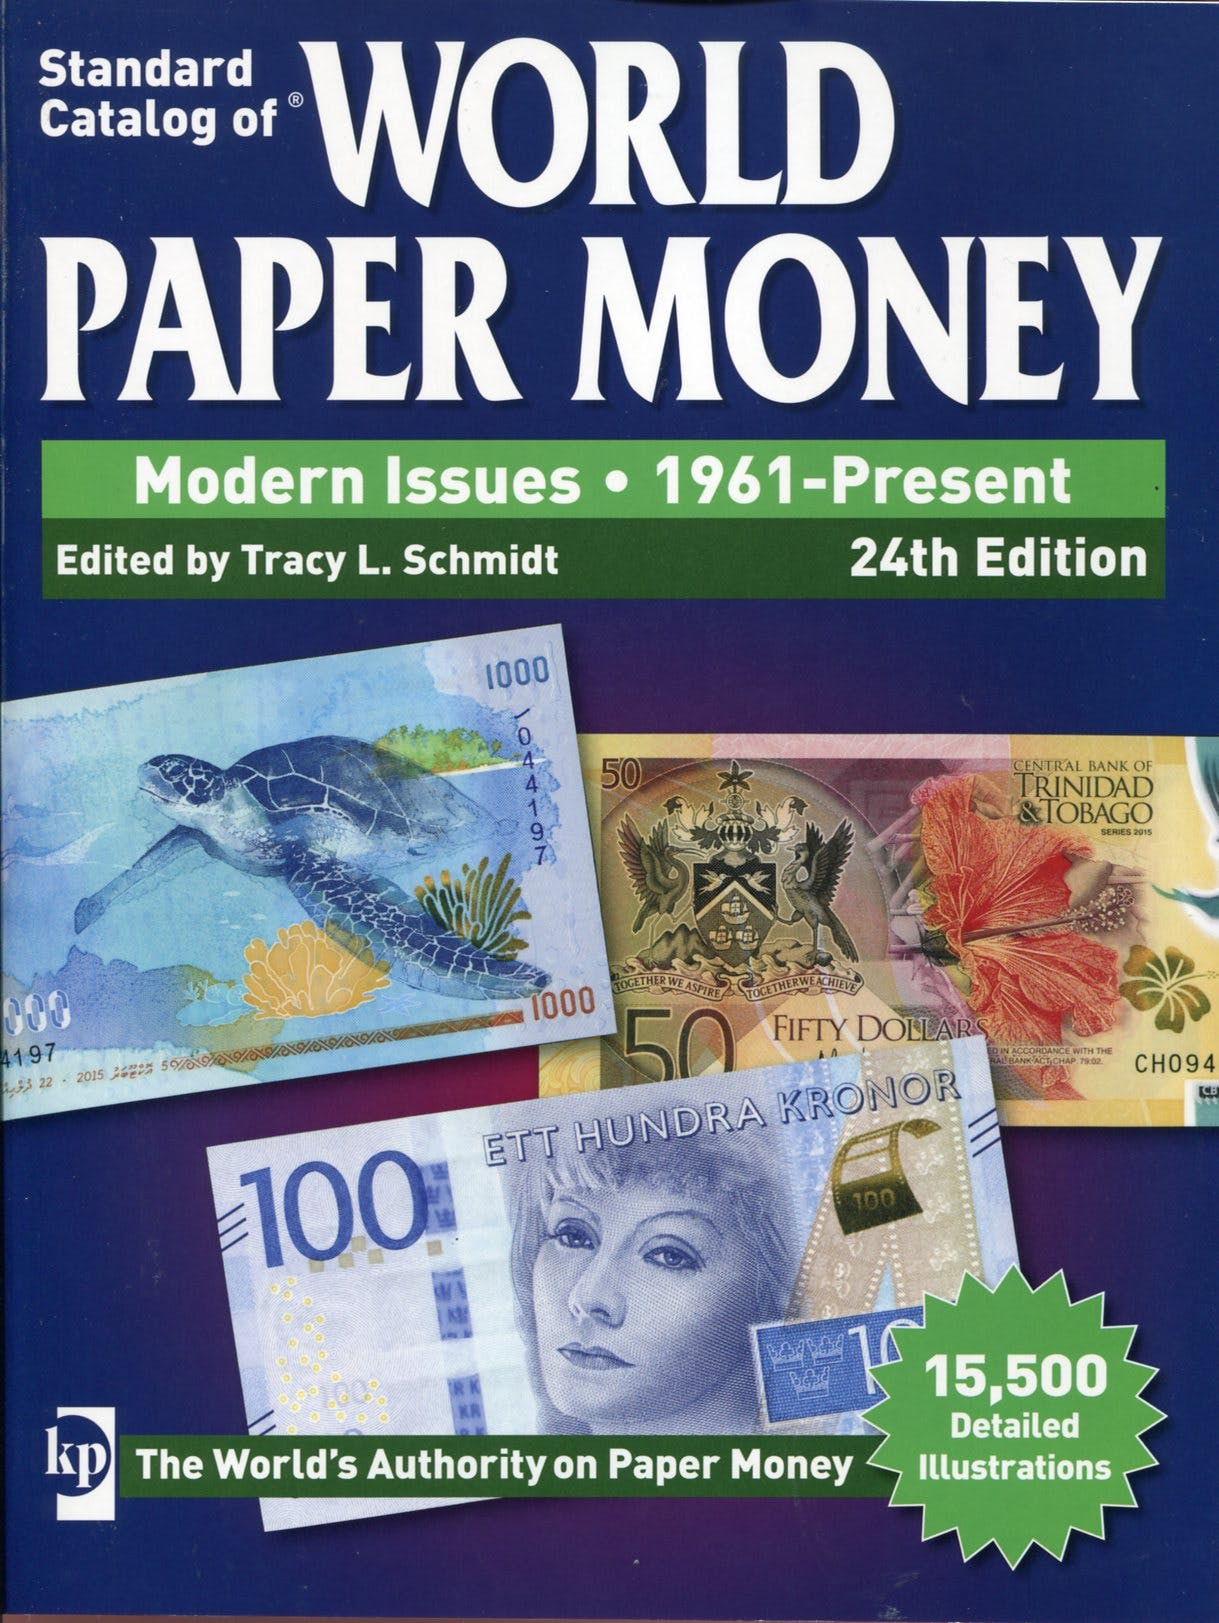 World Paper Money Volume III Modern Issues 24th edition